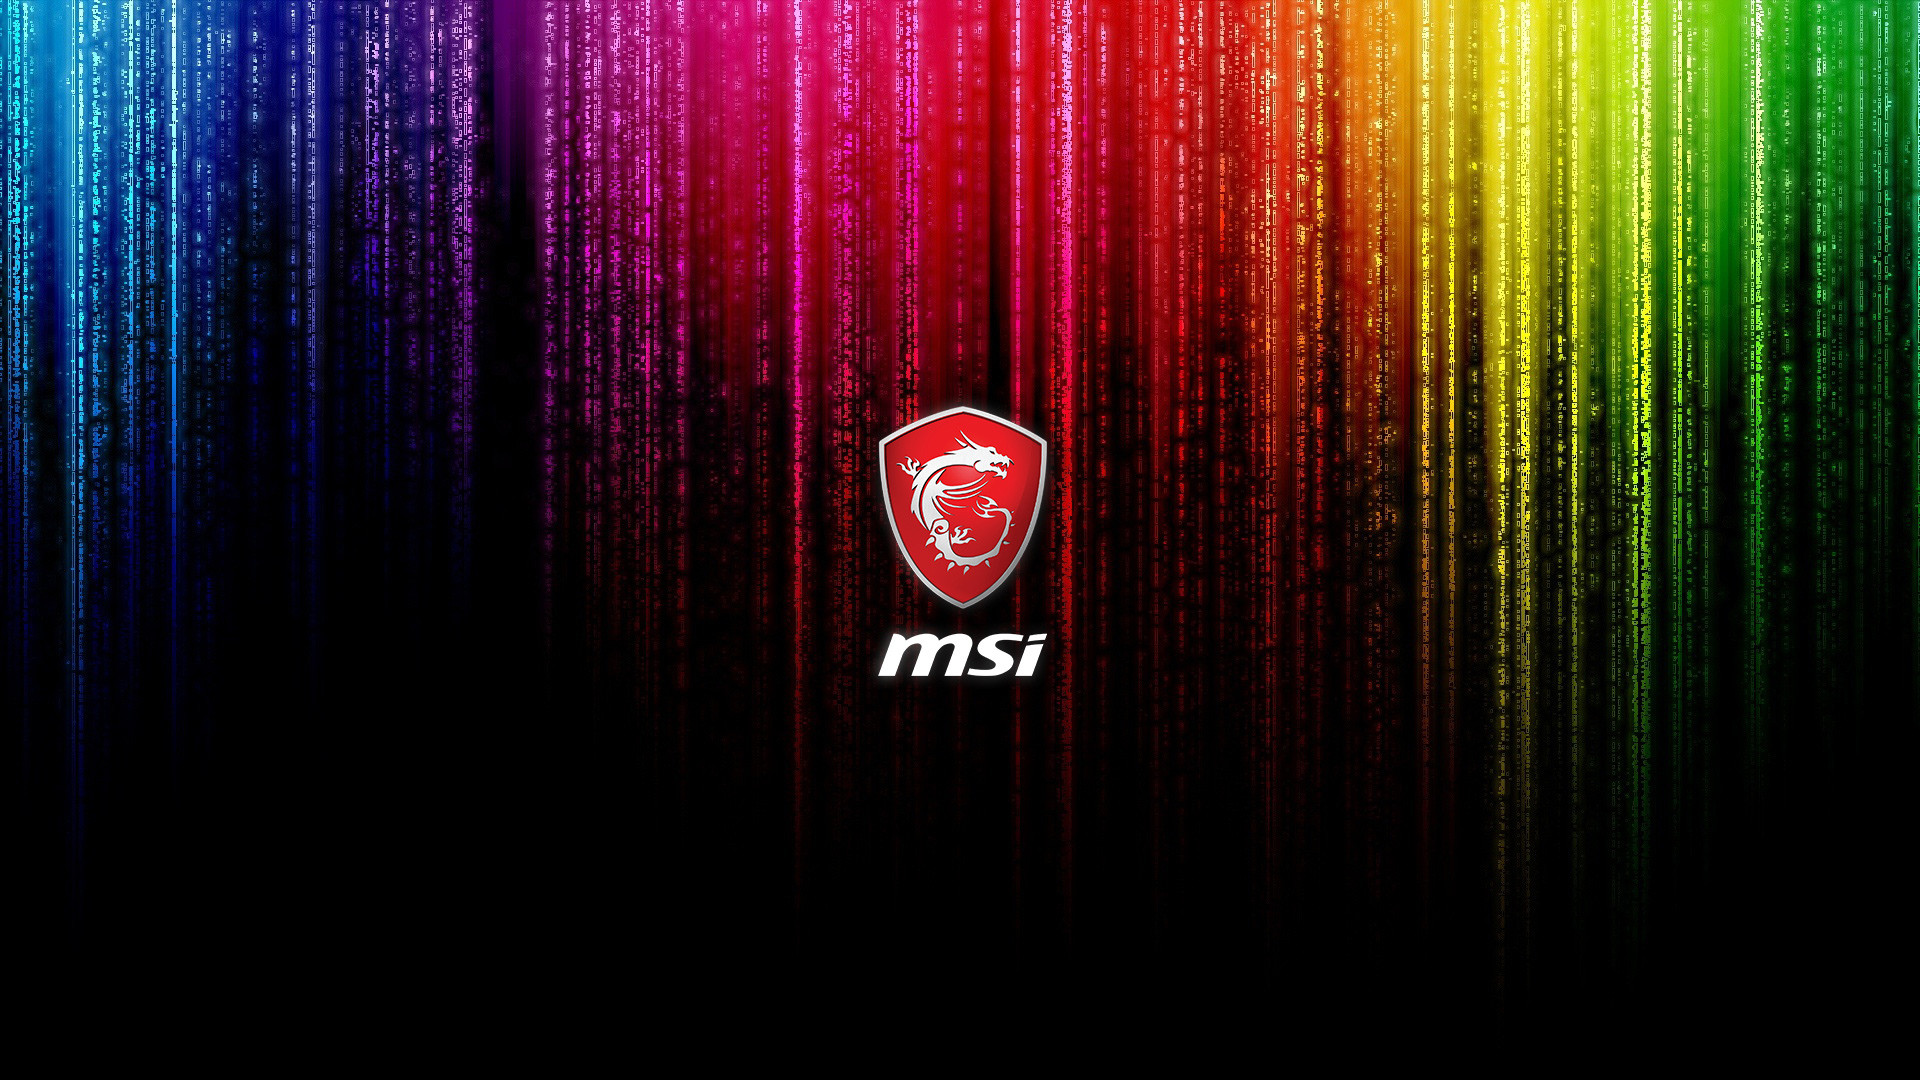 10 New Msi Gaming Series Wallpaper Full Hd 1920 1080 For: Die 80+ Besten MSI Hintergrundbilder